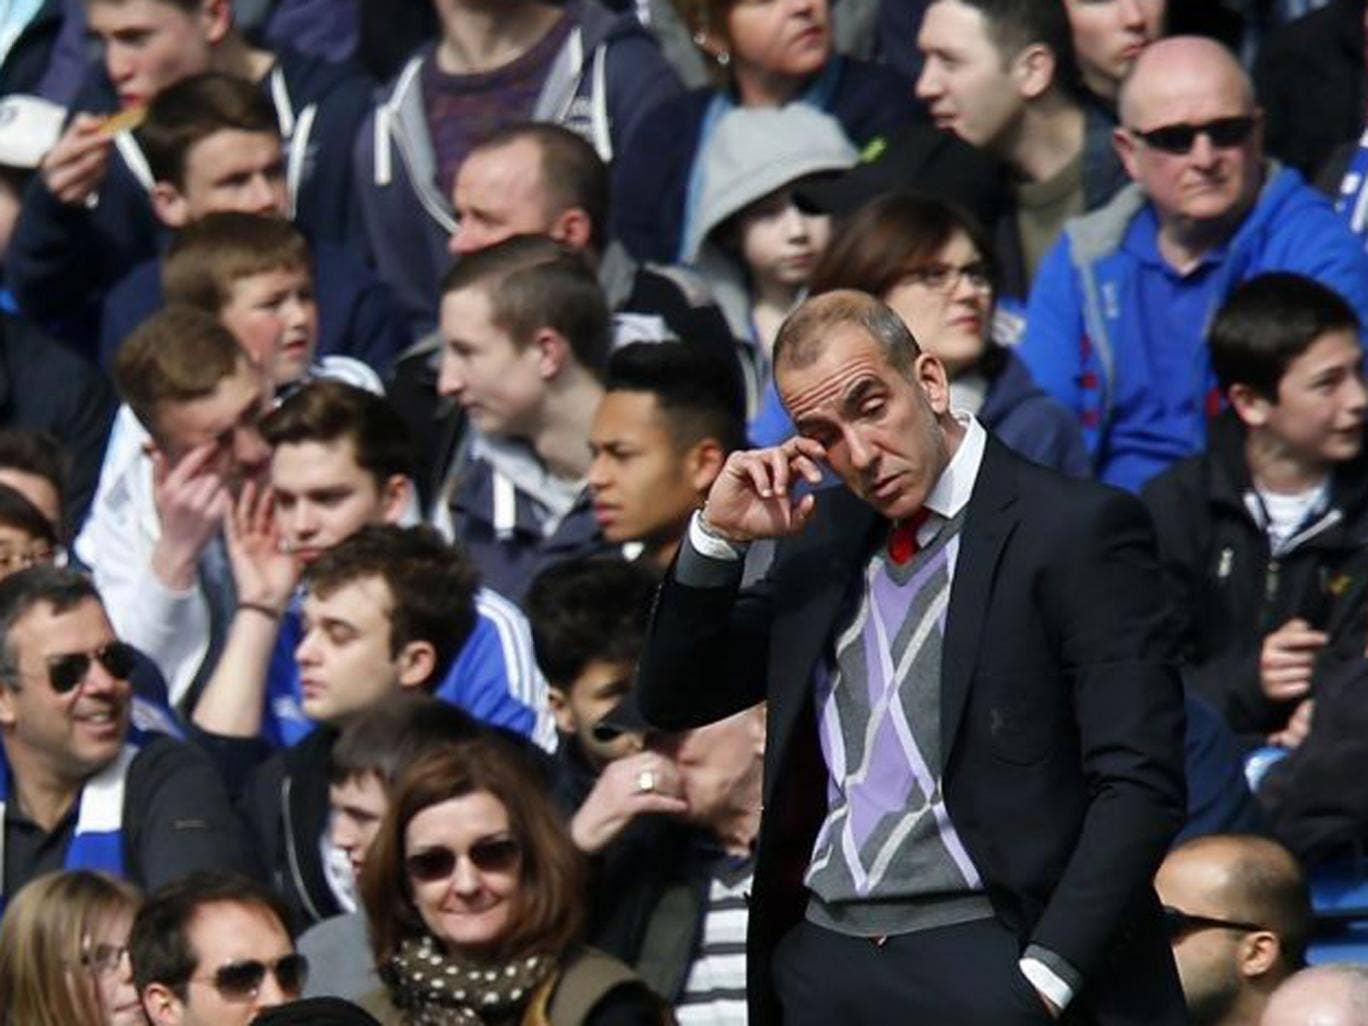 Sunderland's new manager Paolo di Canio during his first match English Premiere League match in charge against Chelsea at Stamford Bridge